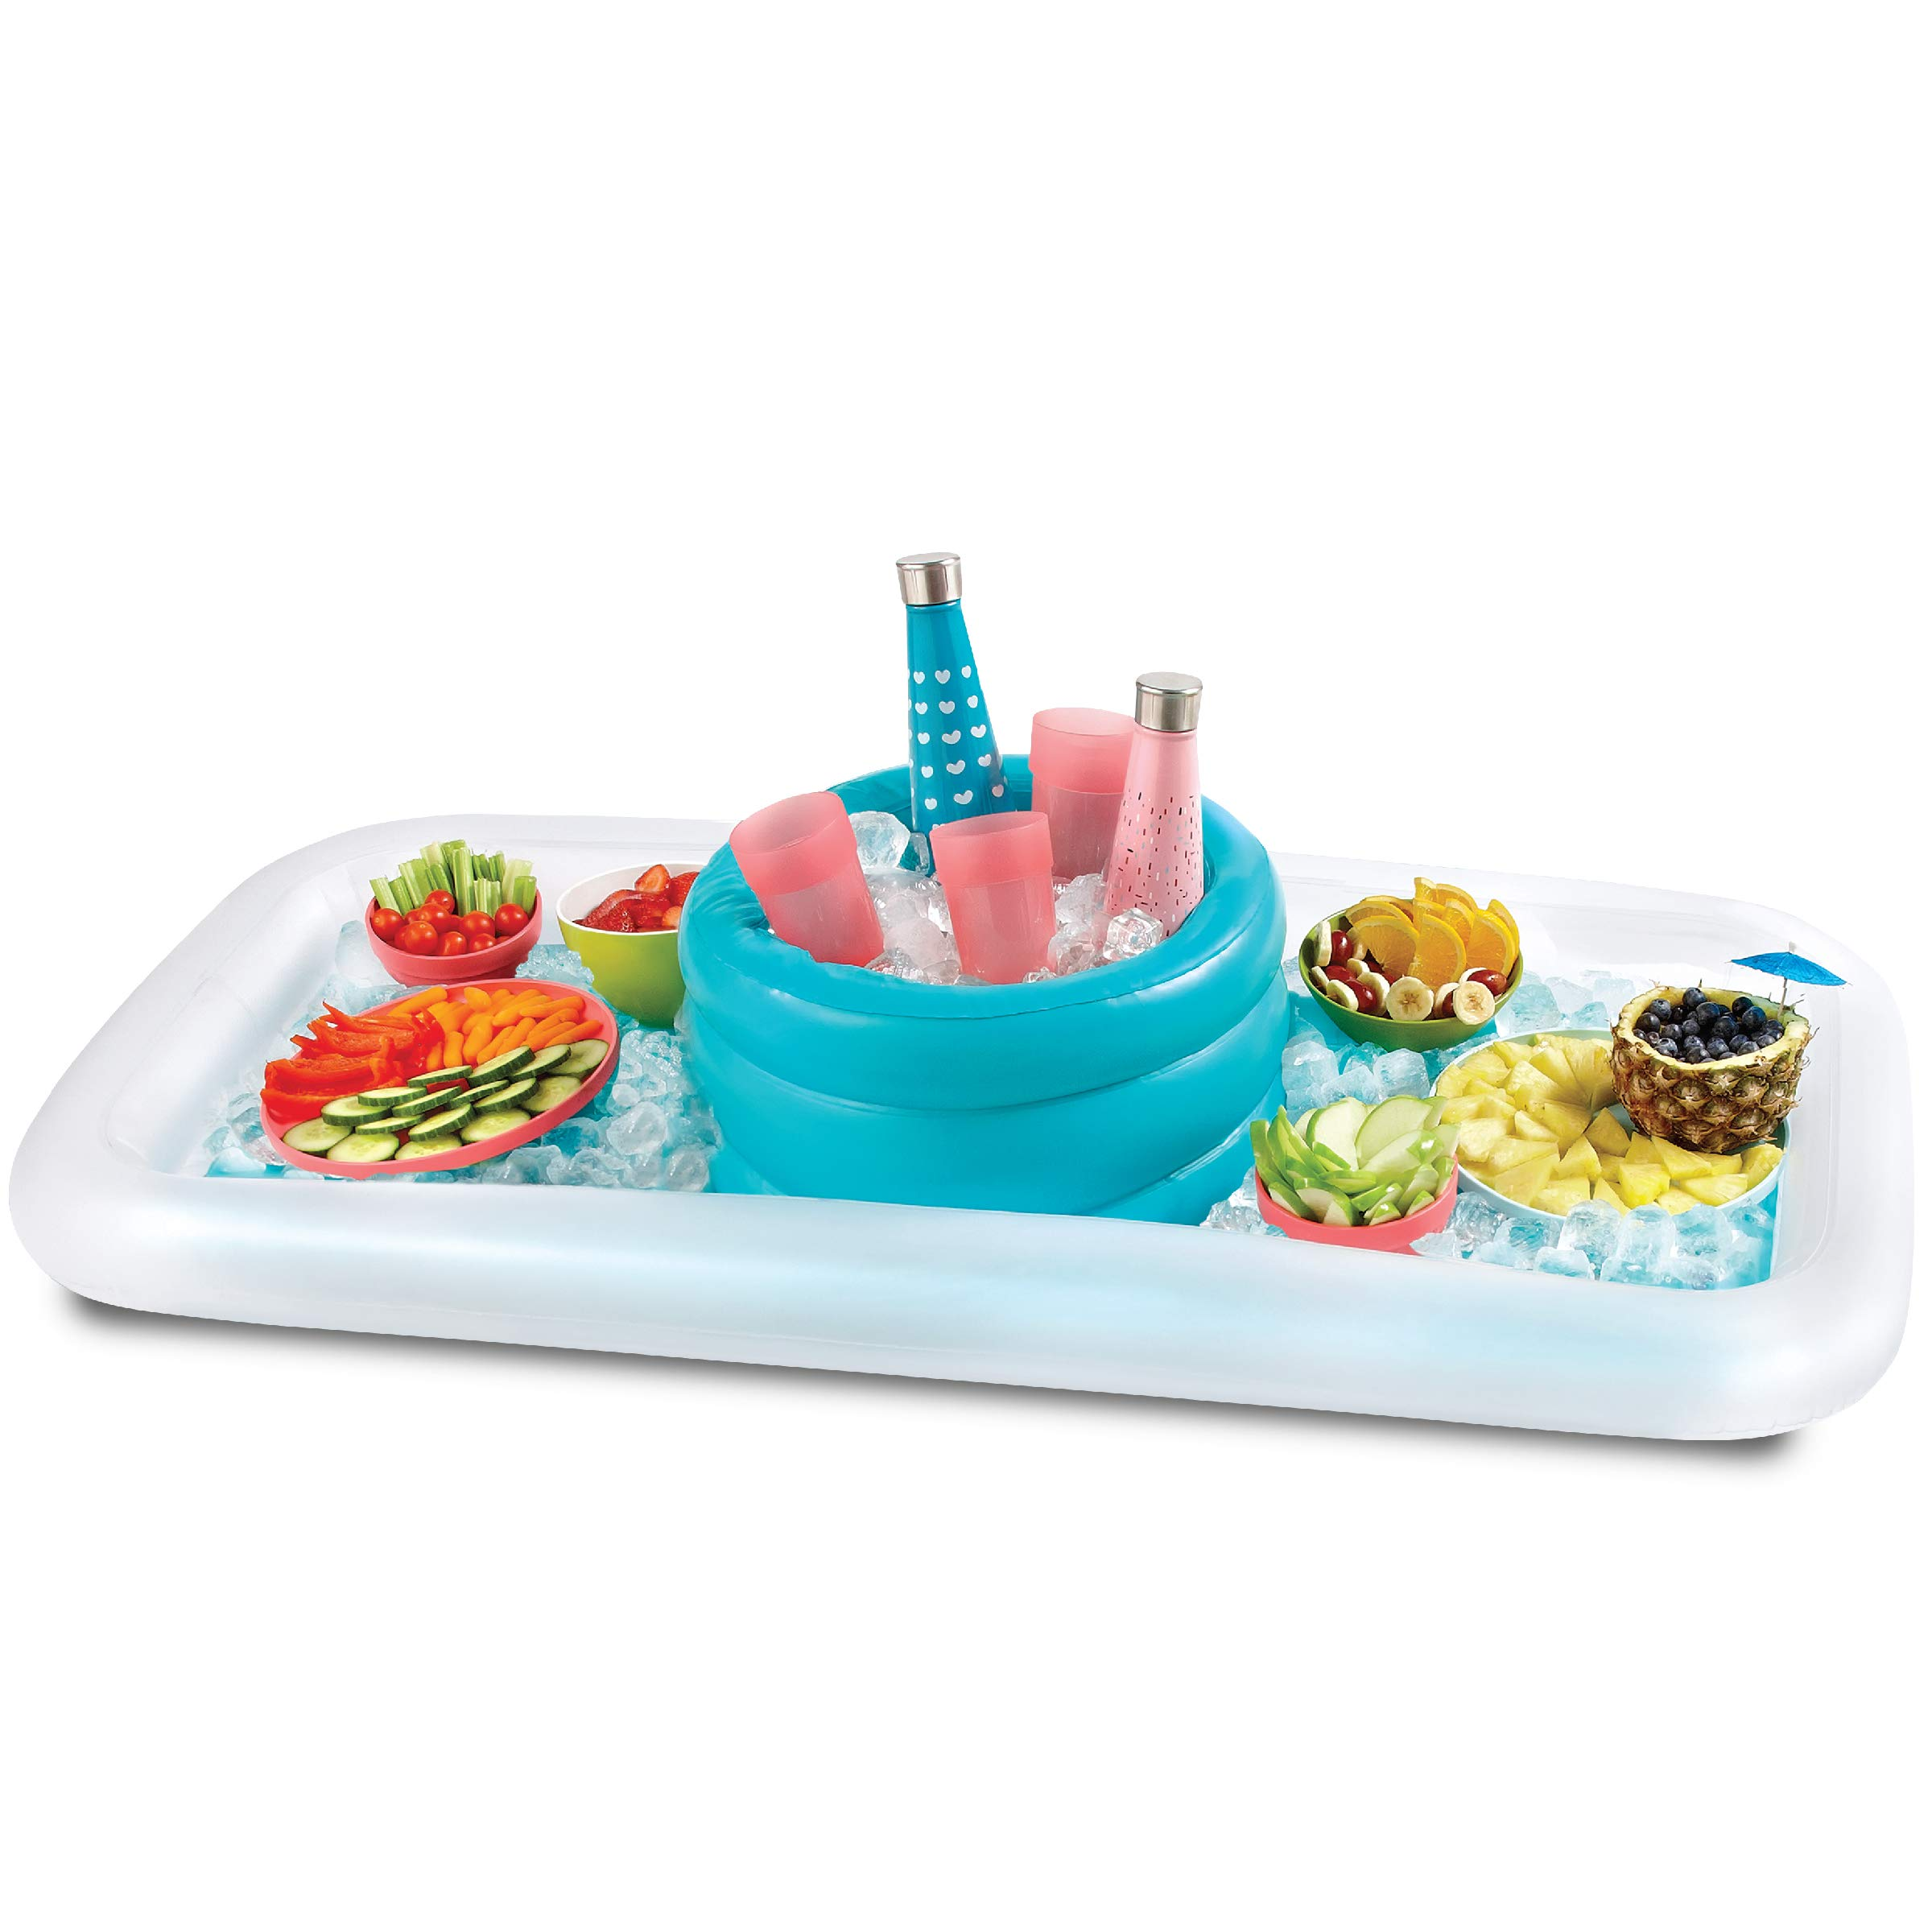 WANDERLUST Inflatable Cooler Buffet Bar Set Raft Float with Drinks Cooler for Summer Parties, Outdoor Play, Beach, Camping, Road Trips, Vacation, and More